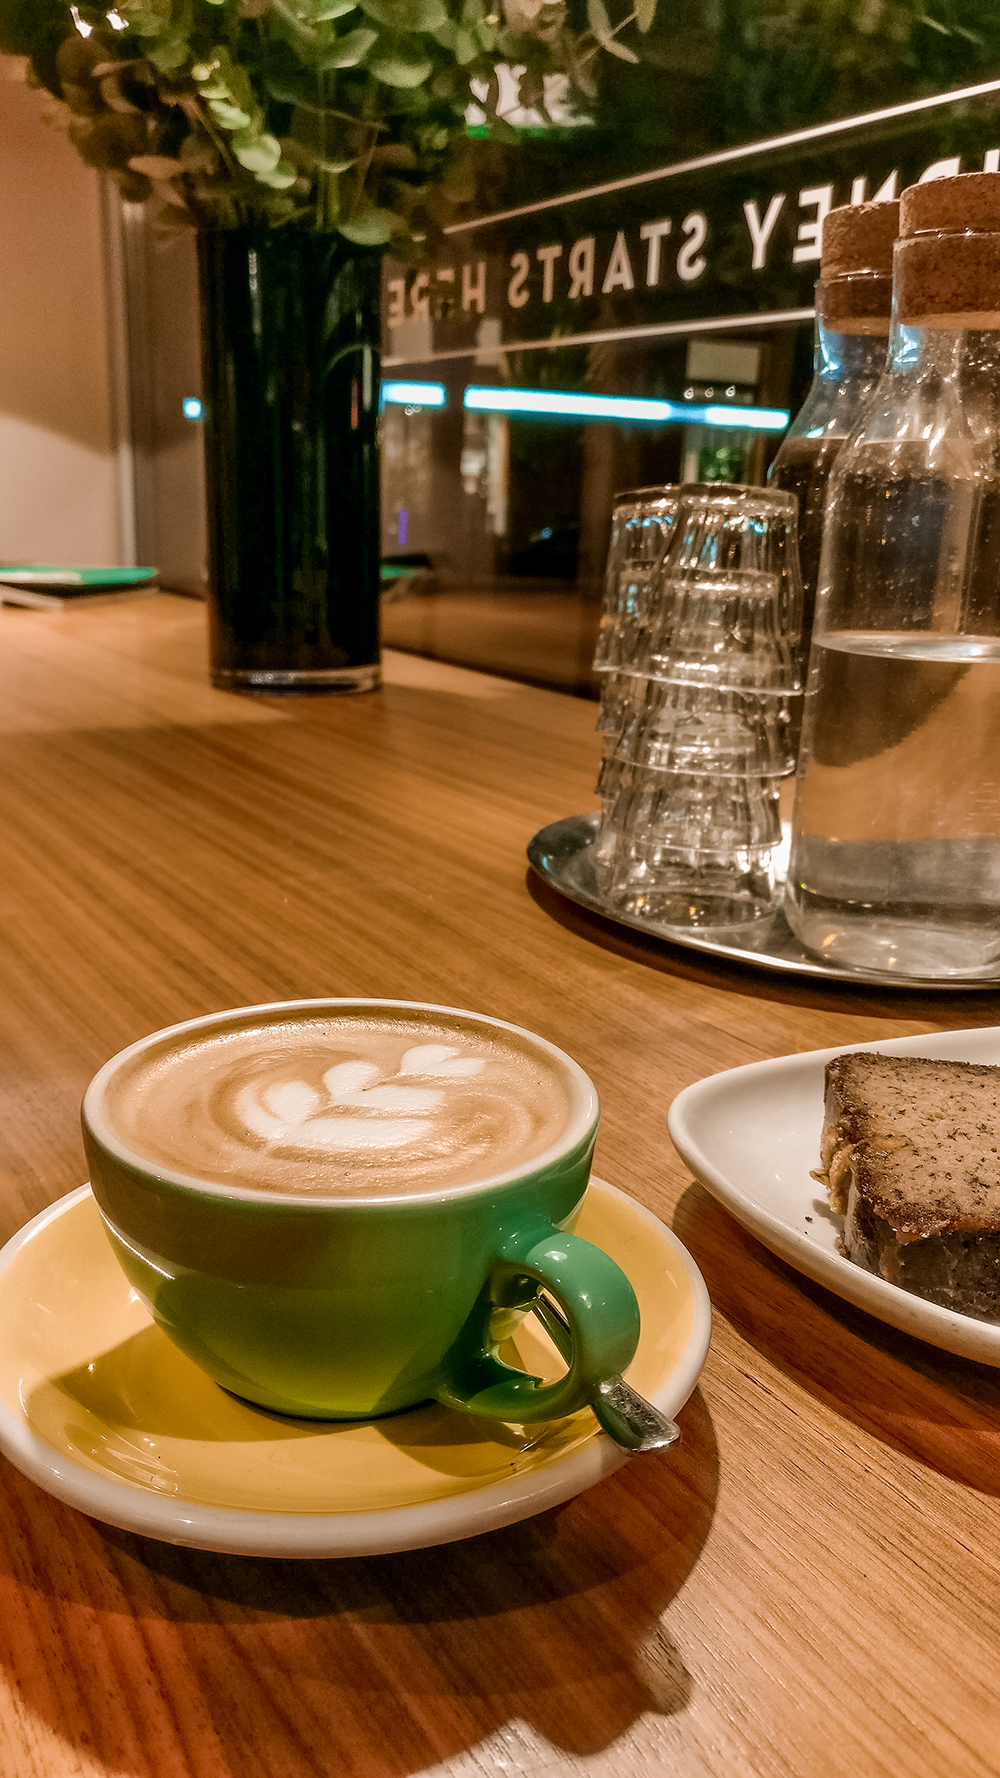 Cappuccino at My Green Cup - Where to drink the best specialty coffee in Budapest, Hungary? | Aliz's Wonderland